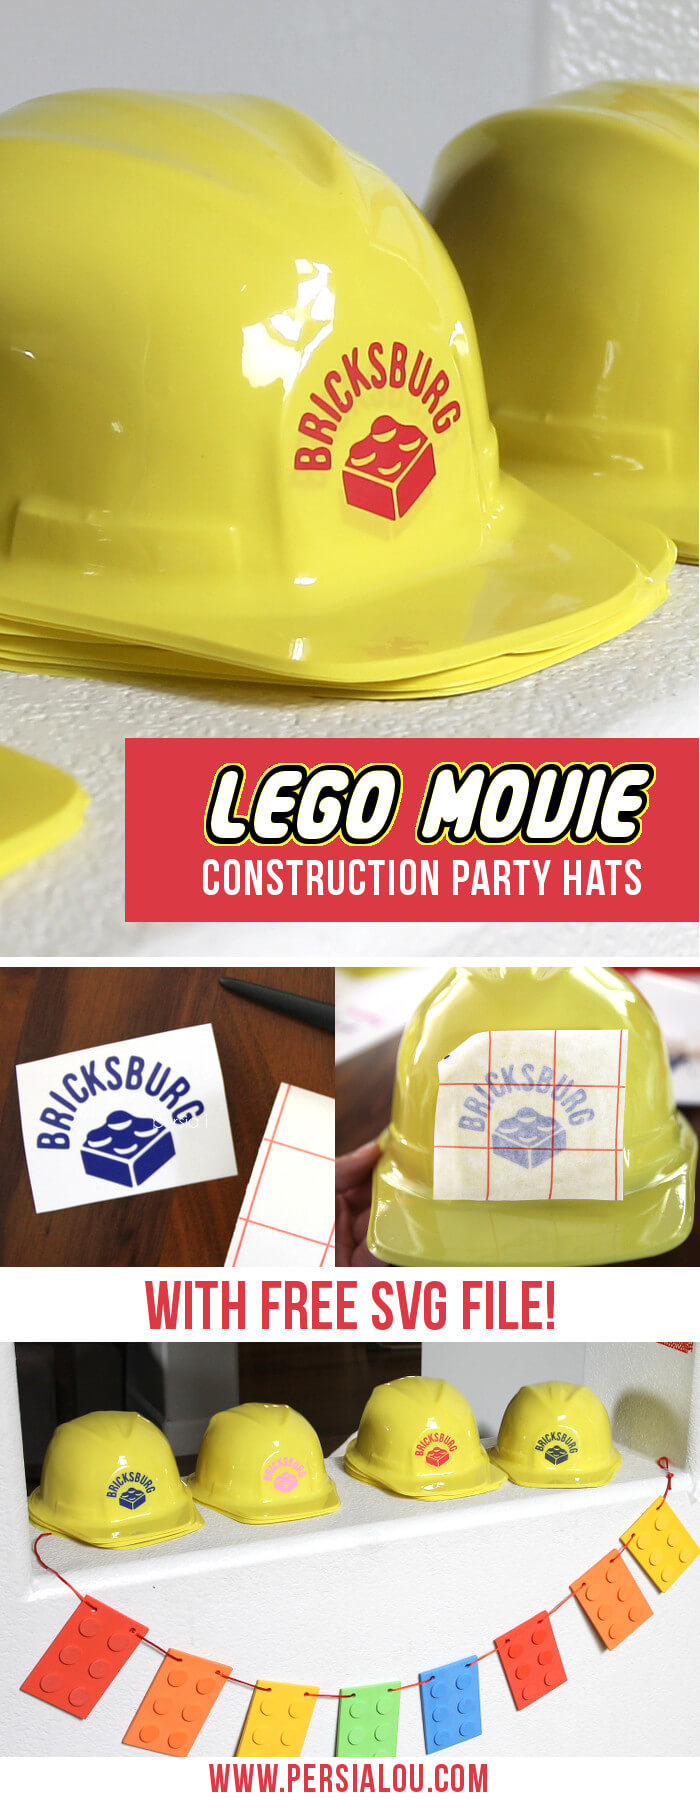 "How cute! Love these ""Bricksburg"" Lego Movie constructions hats! Perfect for a Lego party - there's a free svg cut file for the Silhouette"